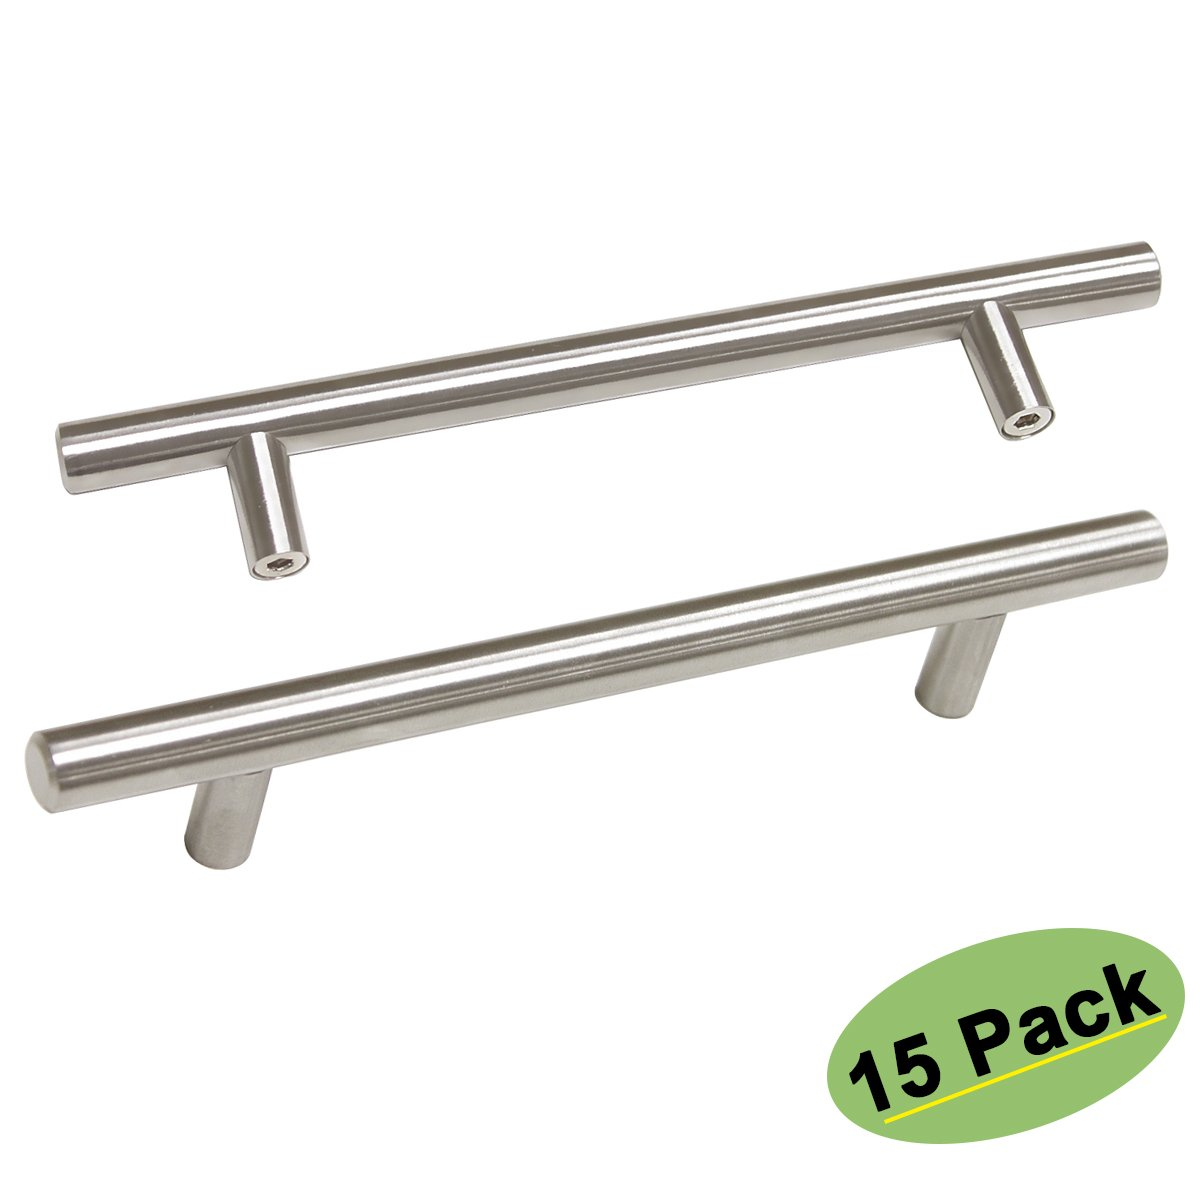 Brushed Satin Nickel Stainless Steel Drawer Cabinet Pulls and Handles 15 Pack 5in (128mm) Hole Centers- Homdiy HD201 T Bar Kitchen Cabinet Hardware Handles